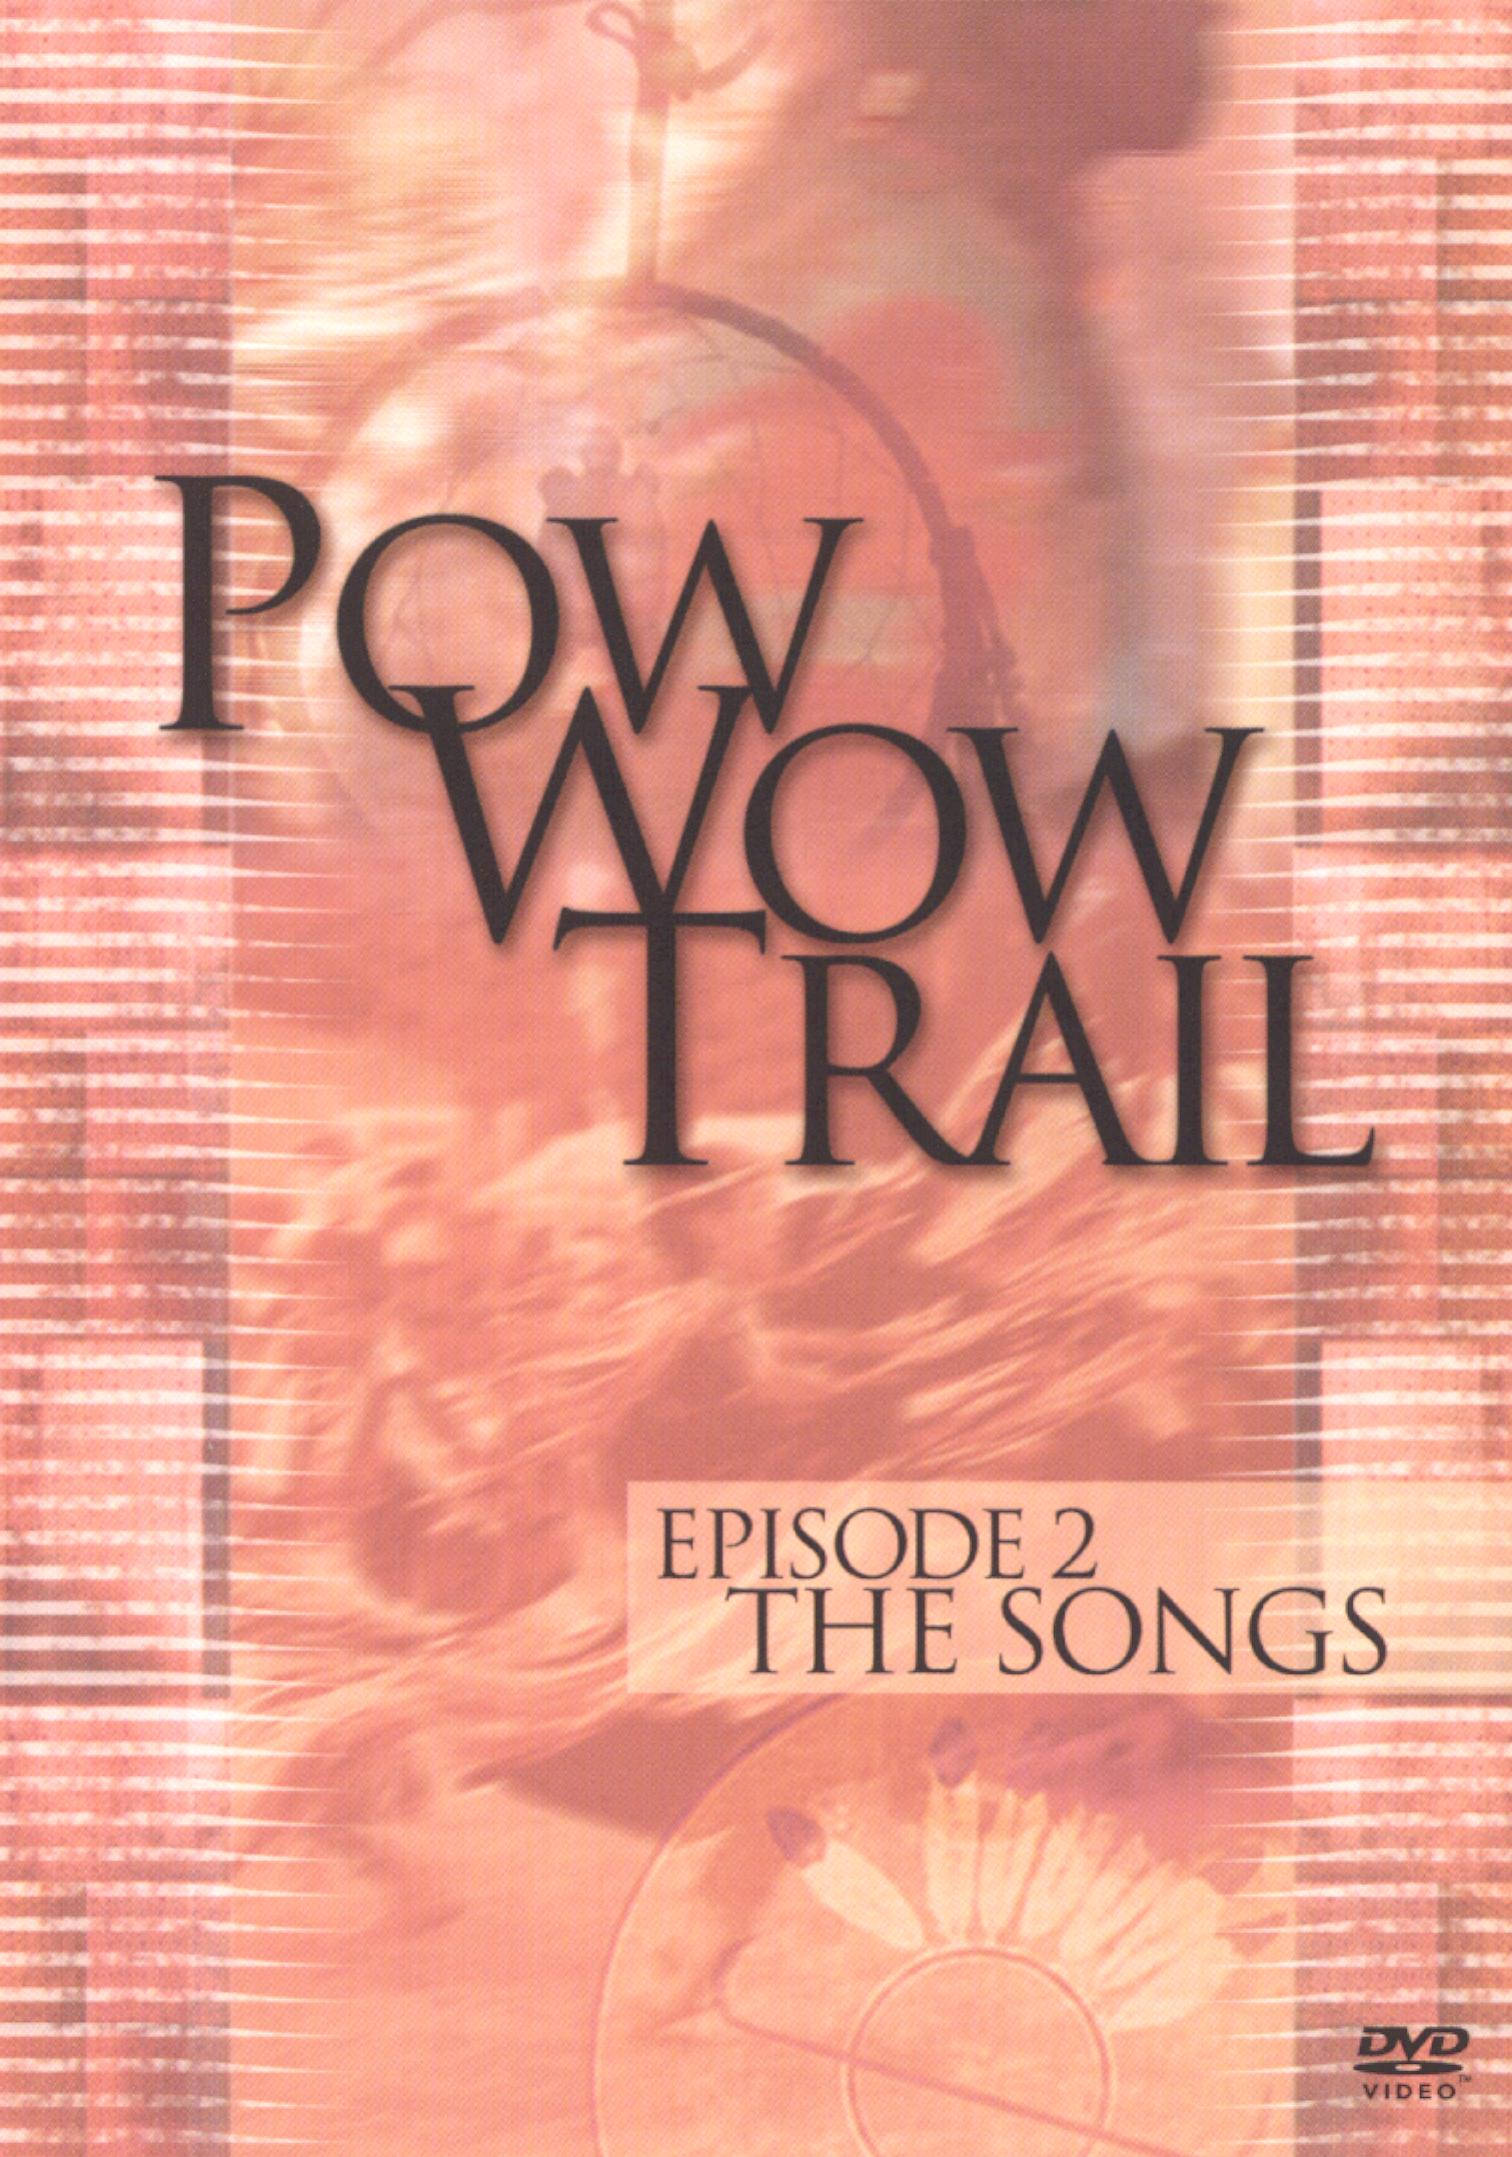 Pow Wow Trail, Episode 2: The Songs